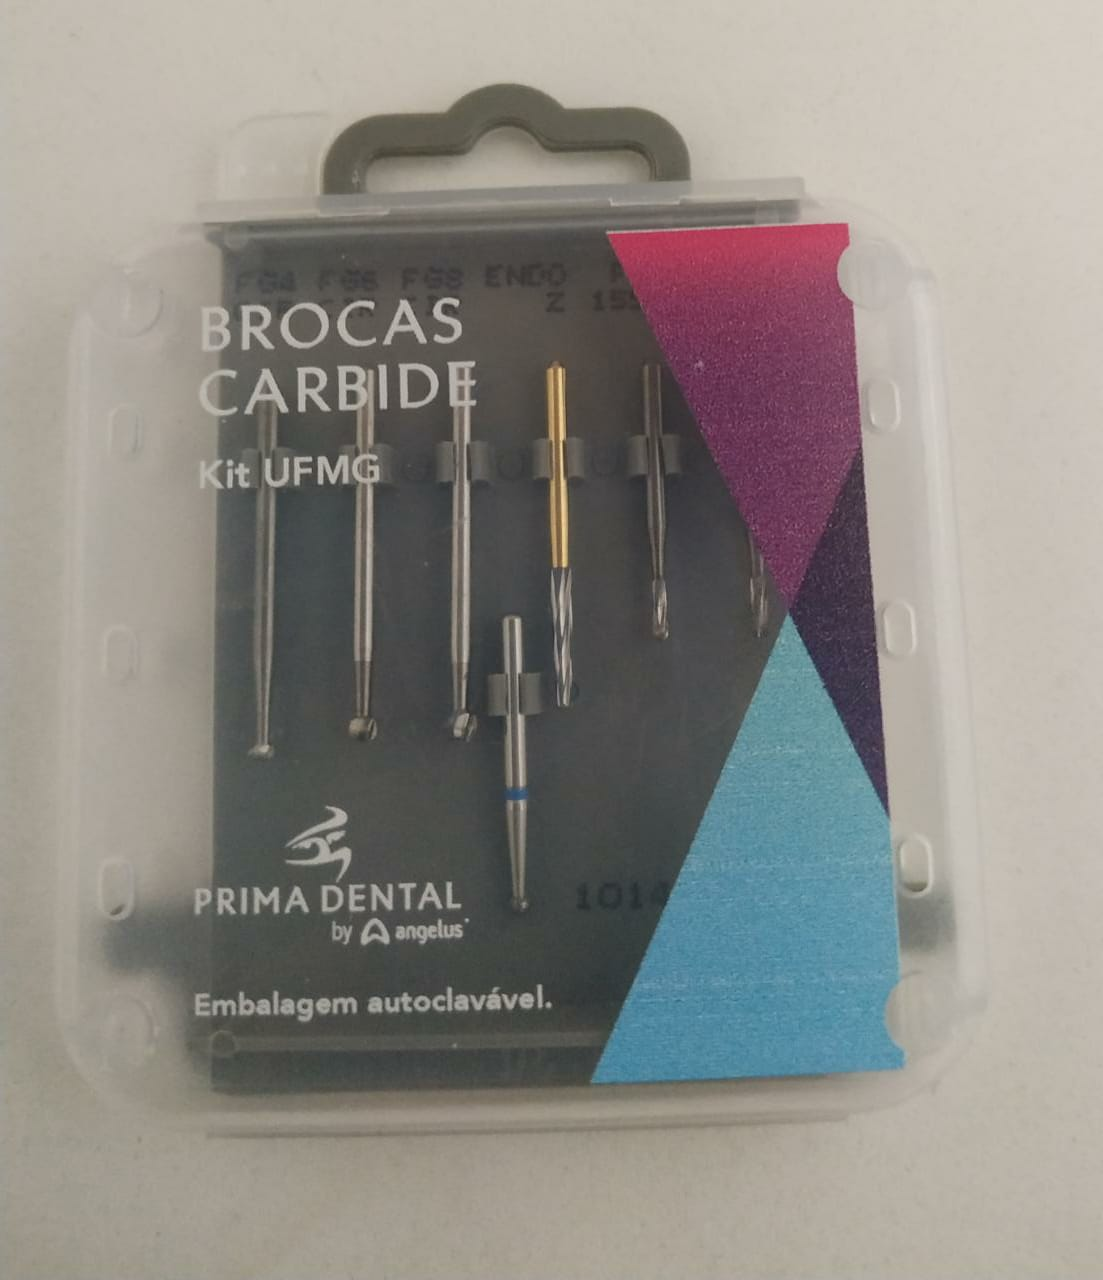 KIT BROCAS TWIGG MITSUE - PRIMA DENTAL ANGELUS